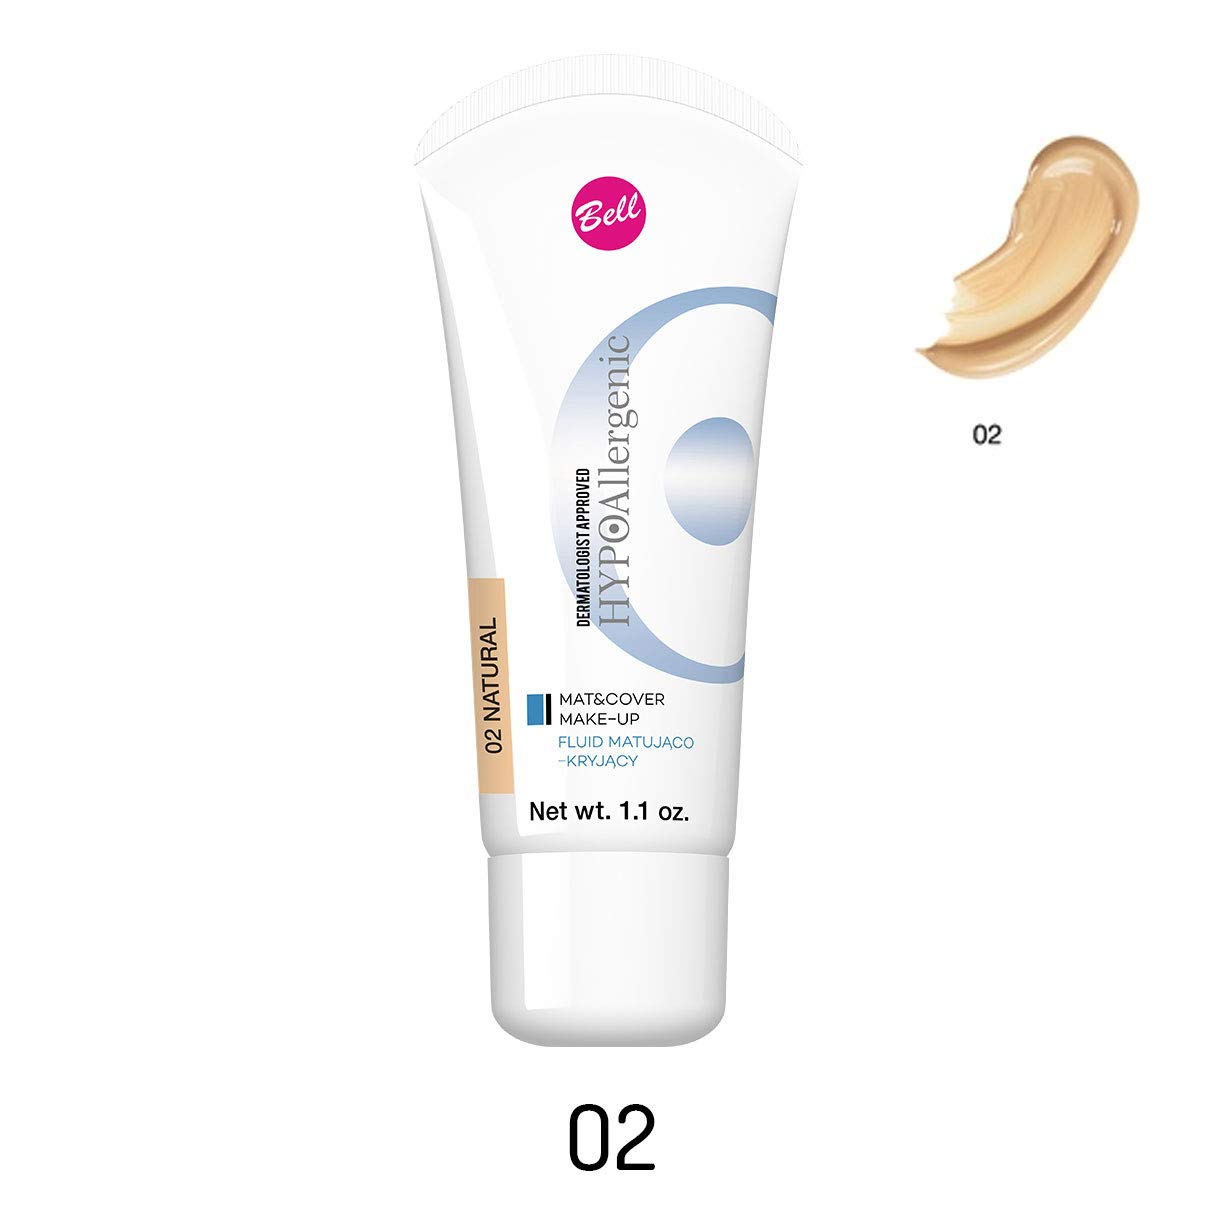 Bell & Concealing Fluid opacizzante e tappetino ipoallergenico cover make-up 02Natural 30g/31, 2gram..